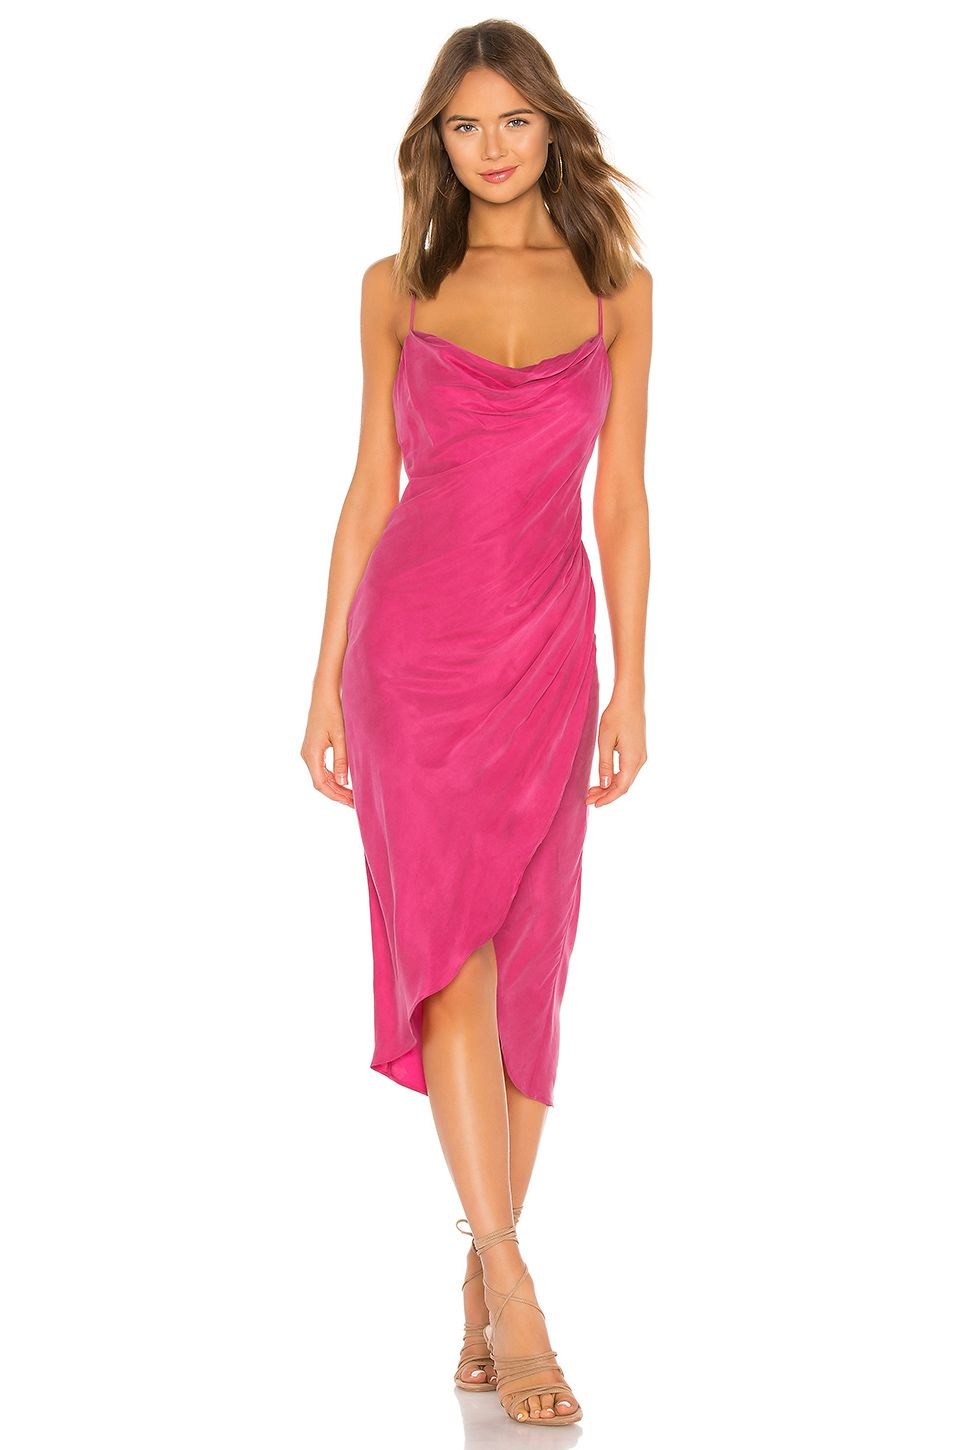 51b0ef91a355f Lovers + Friends Noah Wrap Dress in Hot Pink | Fashion: My Dream ...